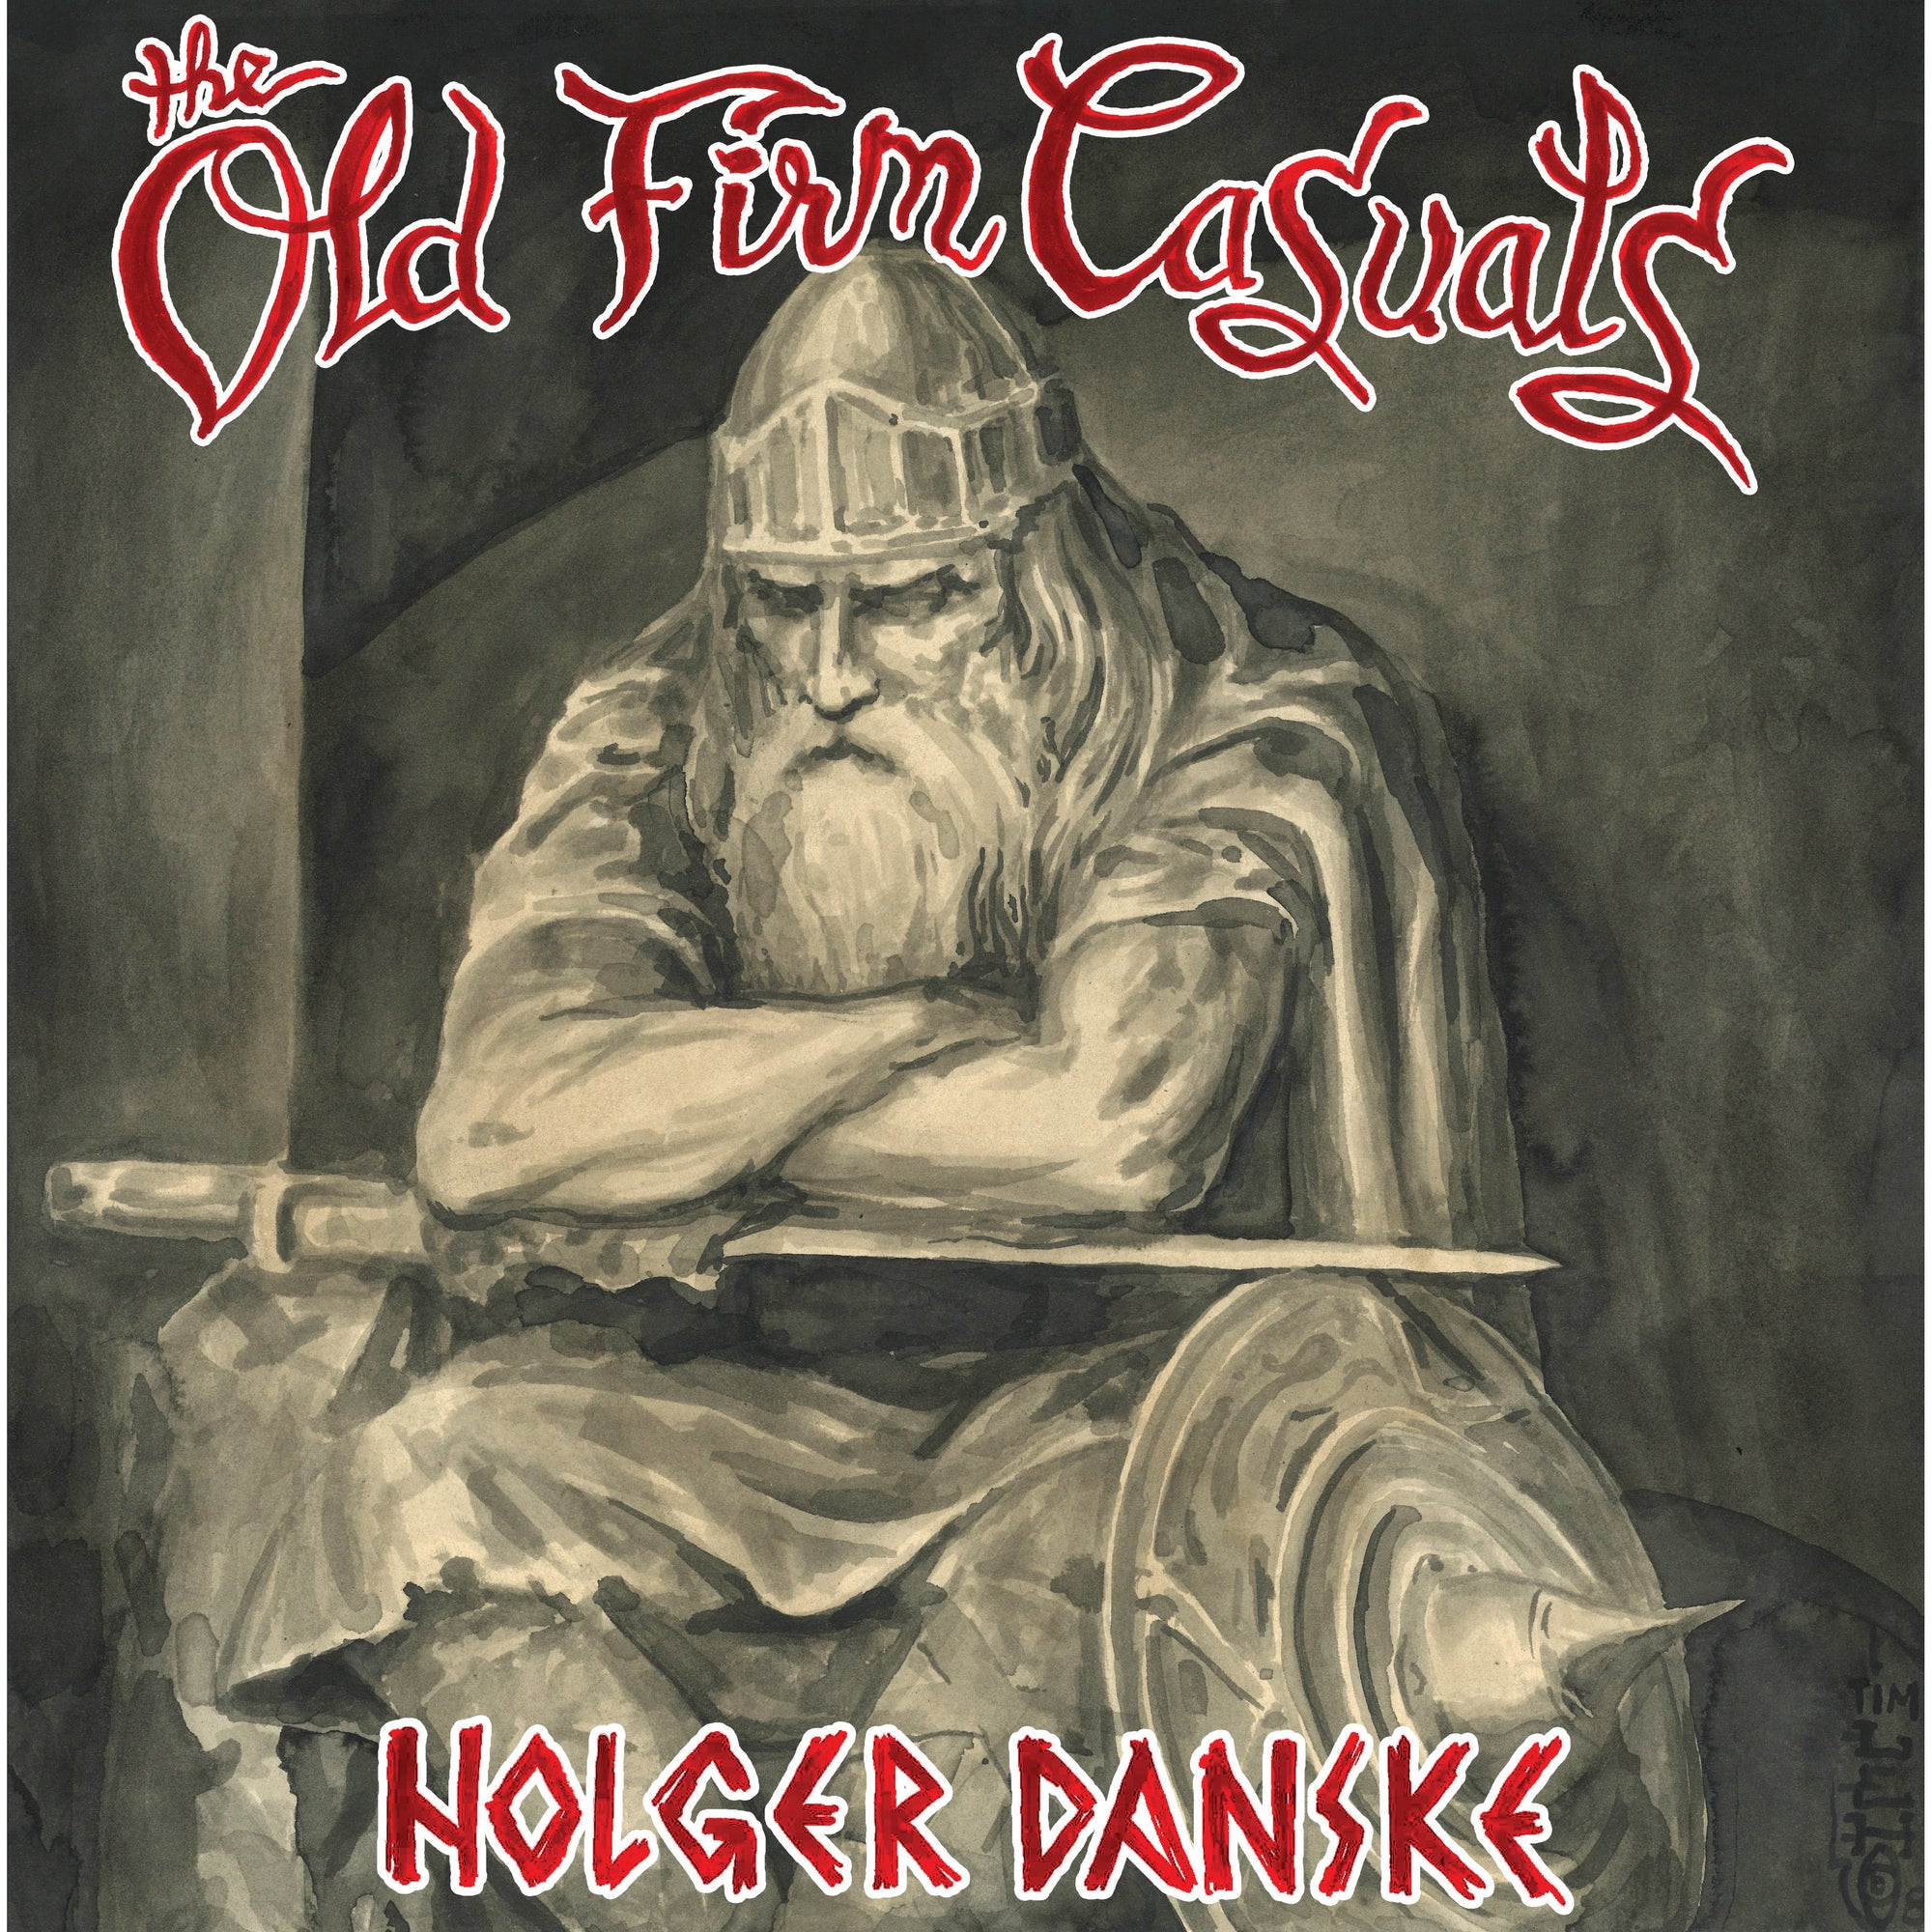 The Old Firm Casuals - Holger Danske LP / CD